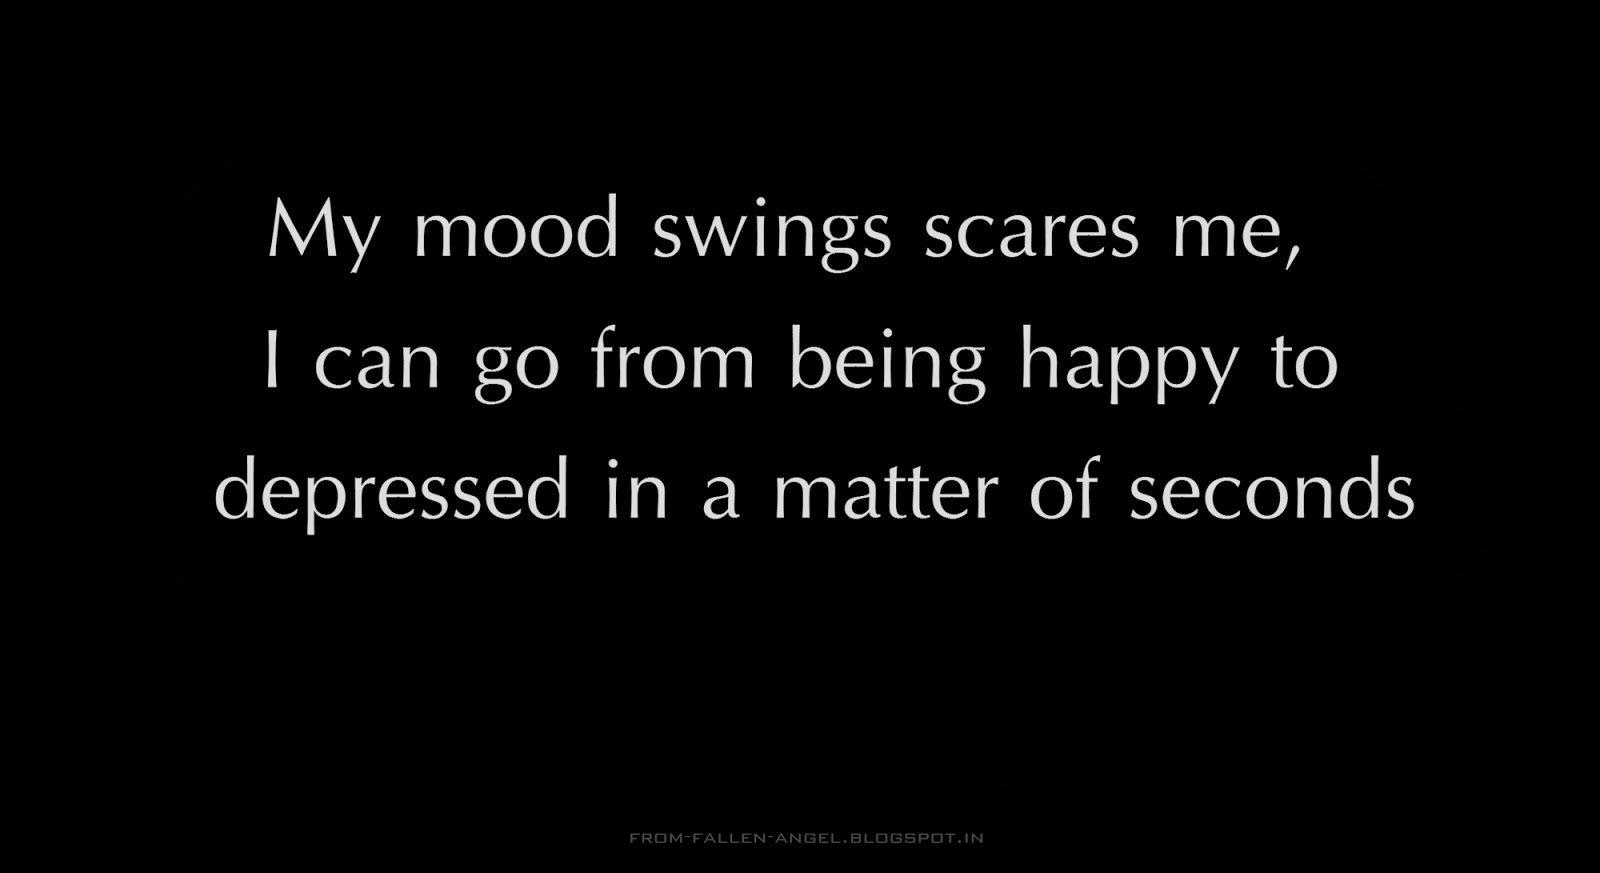 My mood swings scares me, I can go from being happy to depressed in a matter of seconds